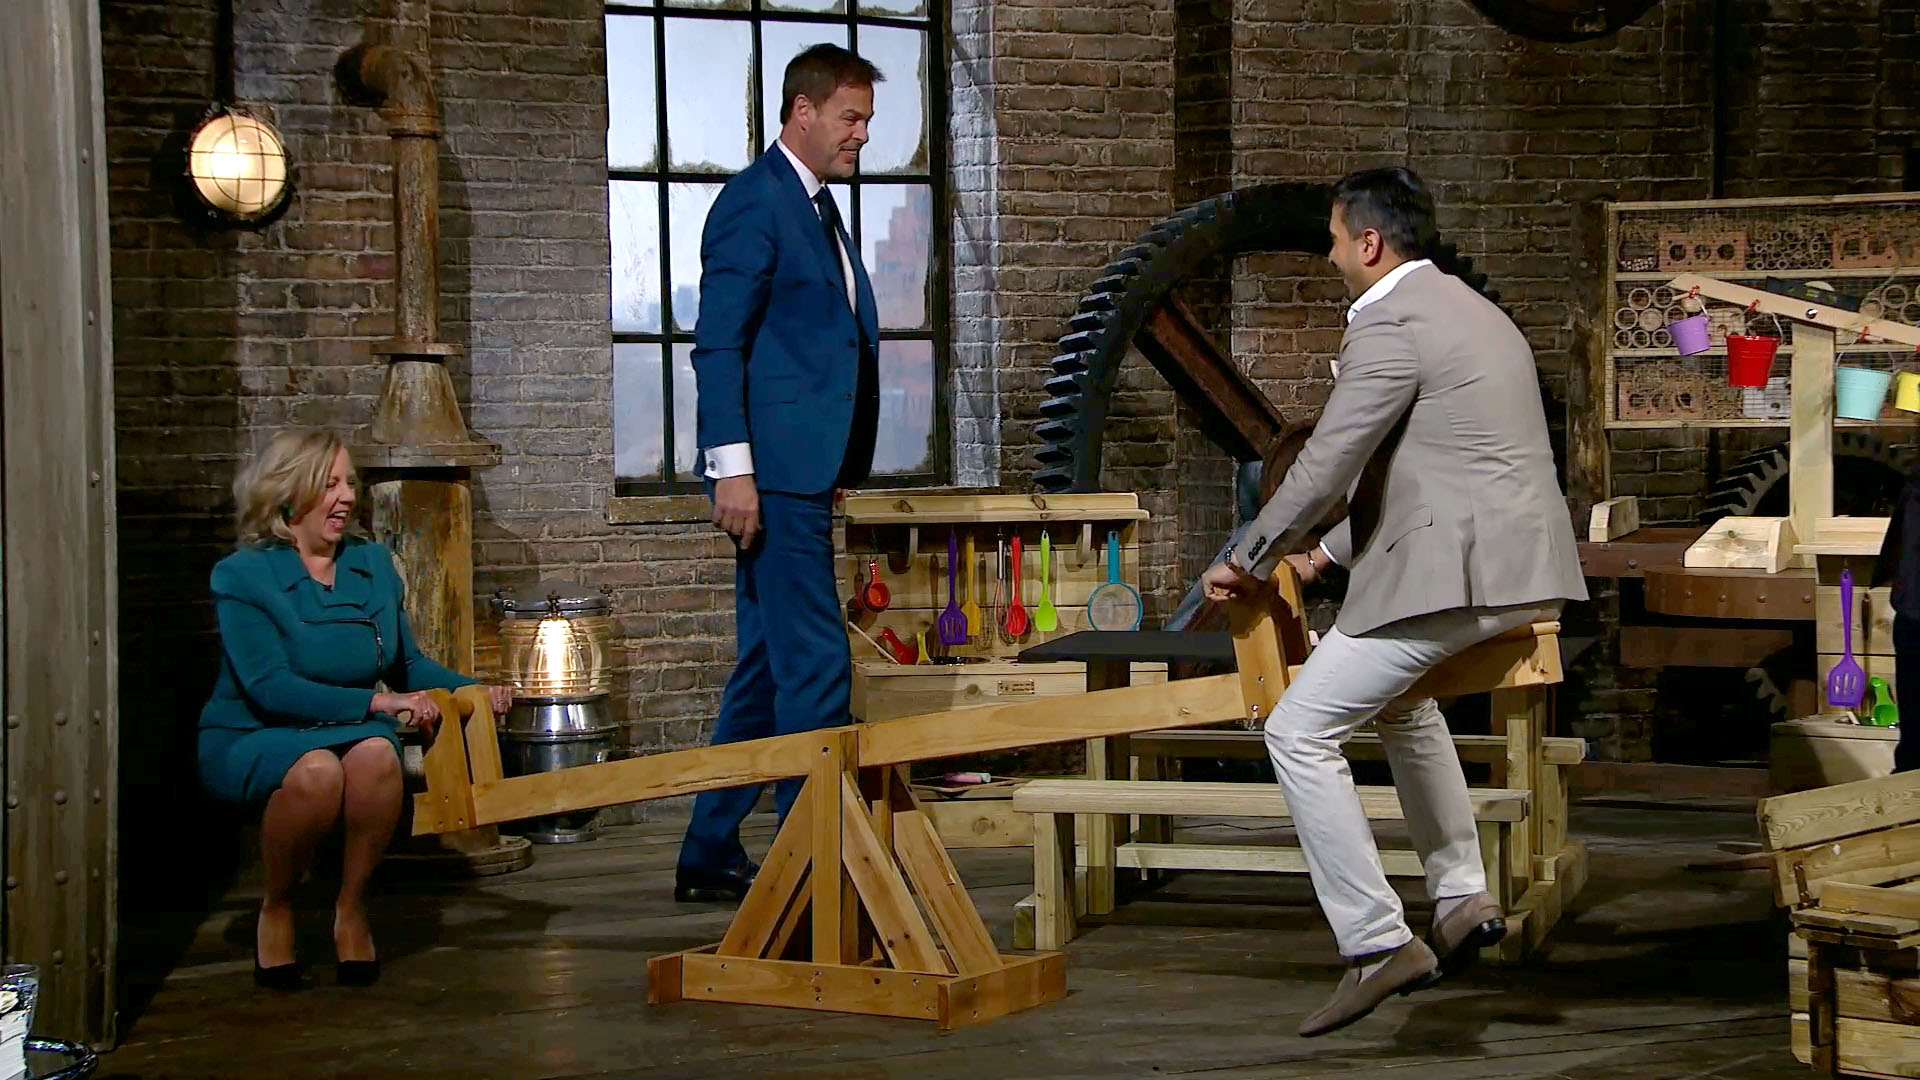 Dragons Den winners: Where are they now in 2019?